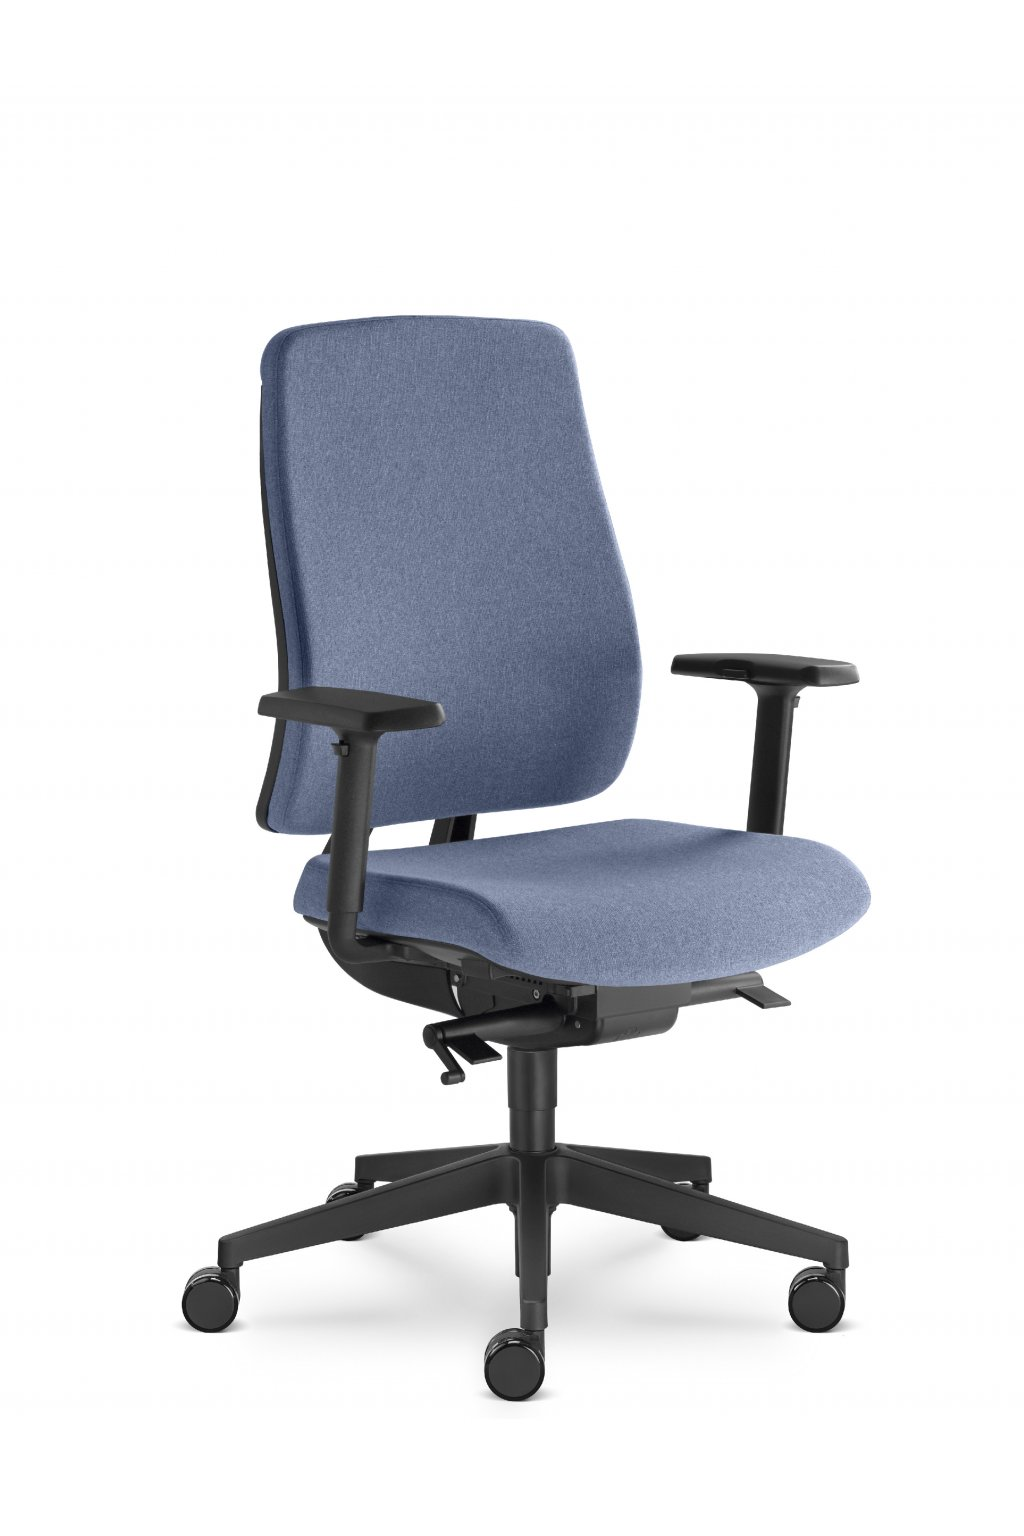 LD SEATING židle SWING 560 SYS - P - BR209